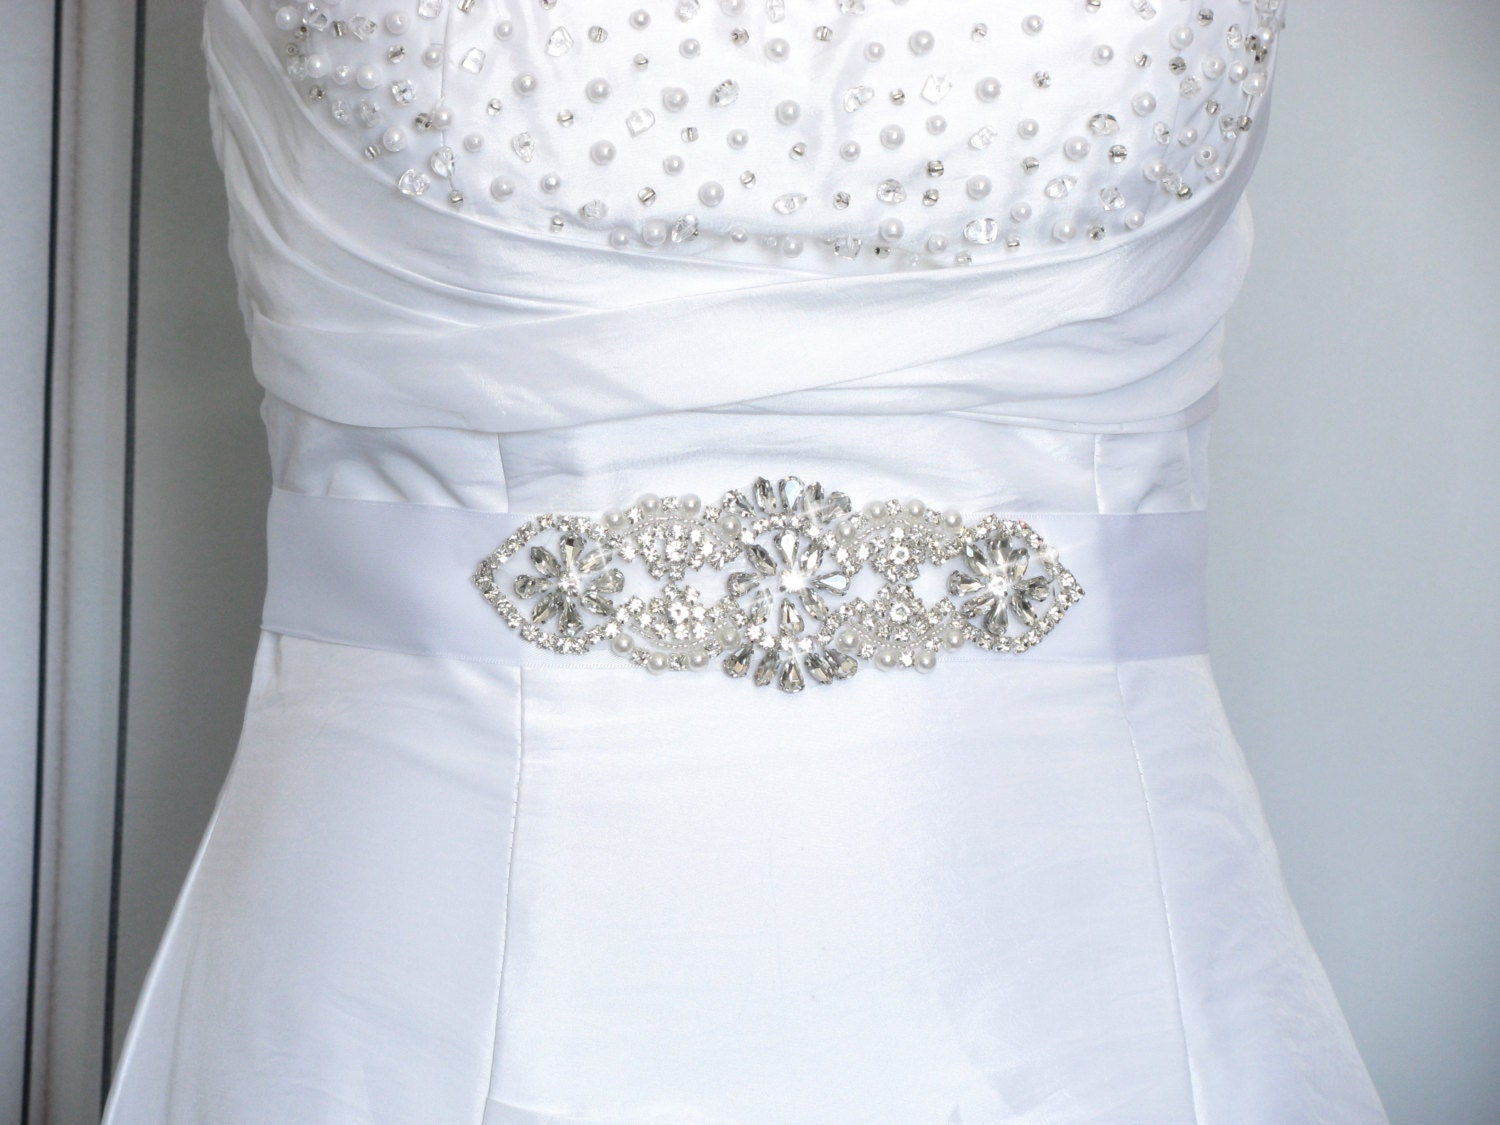 Wedding sash rhinestone bridal belt crystal satin wedding for Wedding dress sash with rhinestones